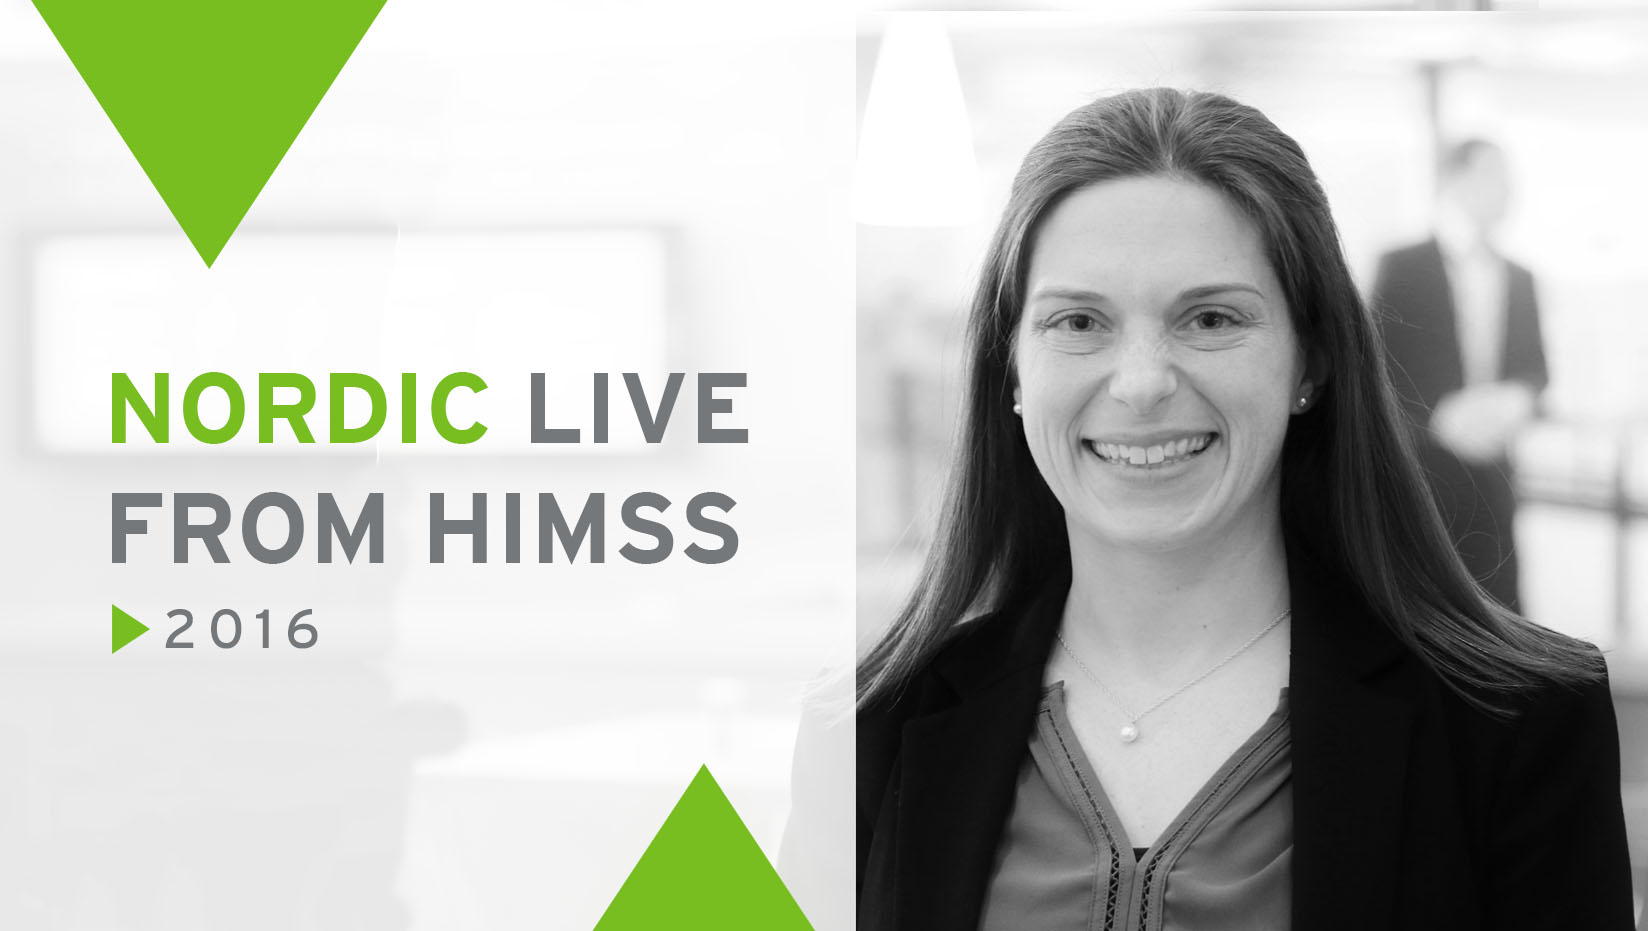 Abby Polich at HIMSS16